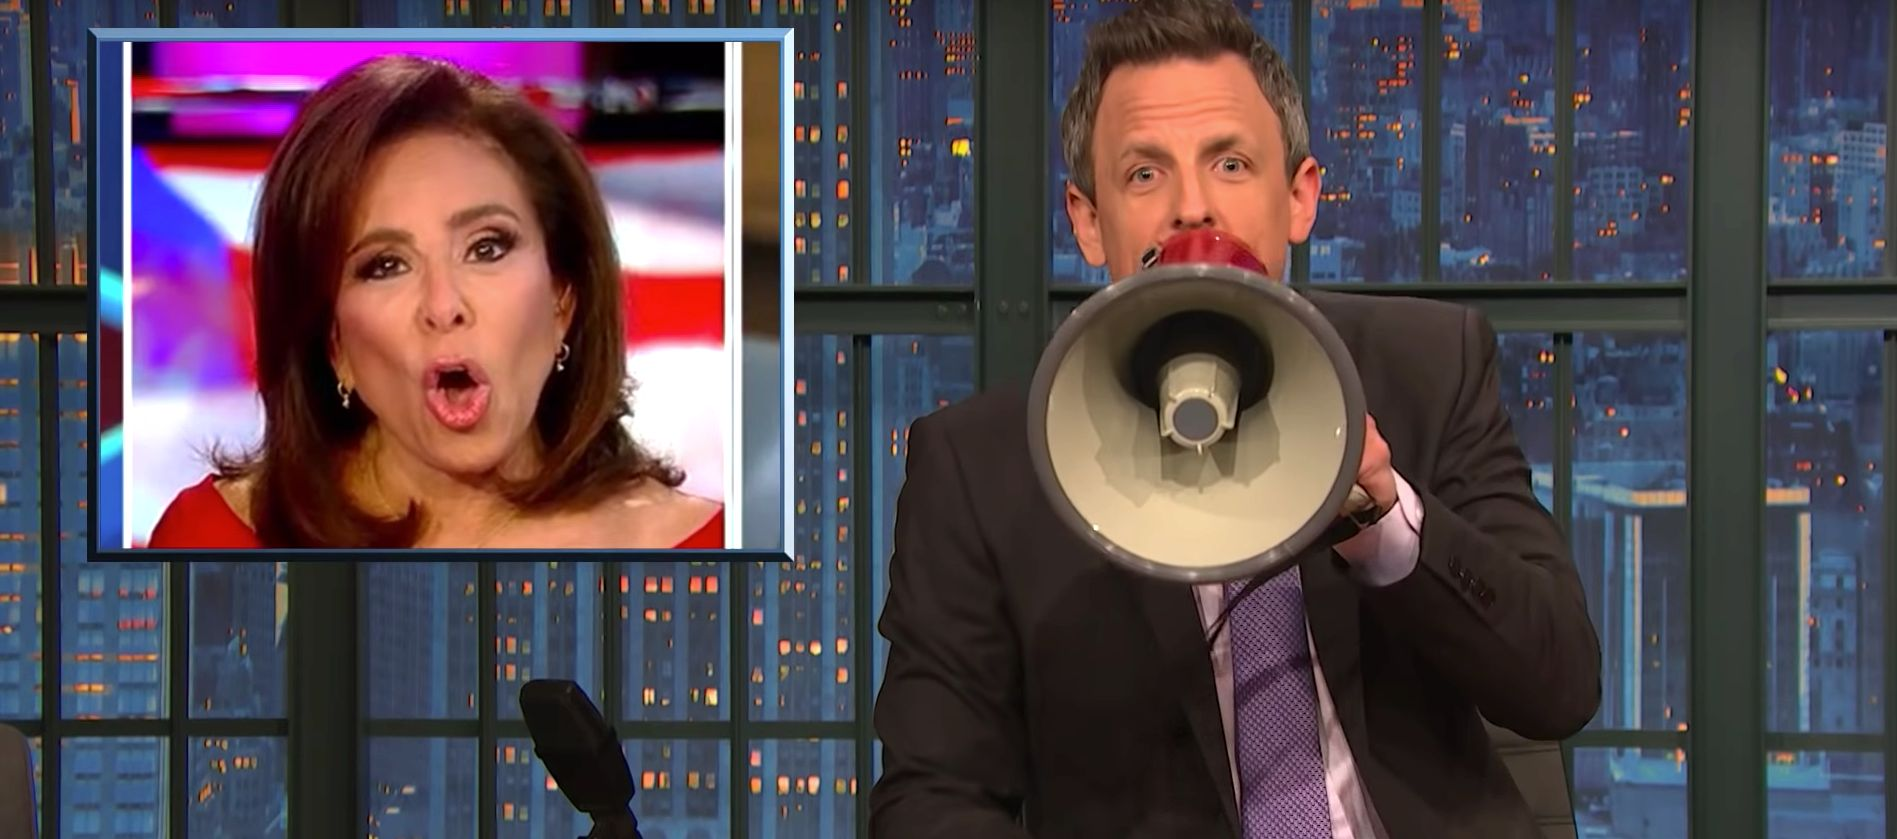 Seth Meyers' Racism Warning To Fox News' Jeanine Pirro Is Loud And